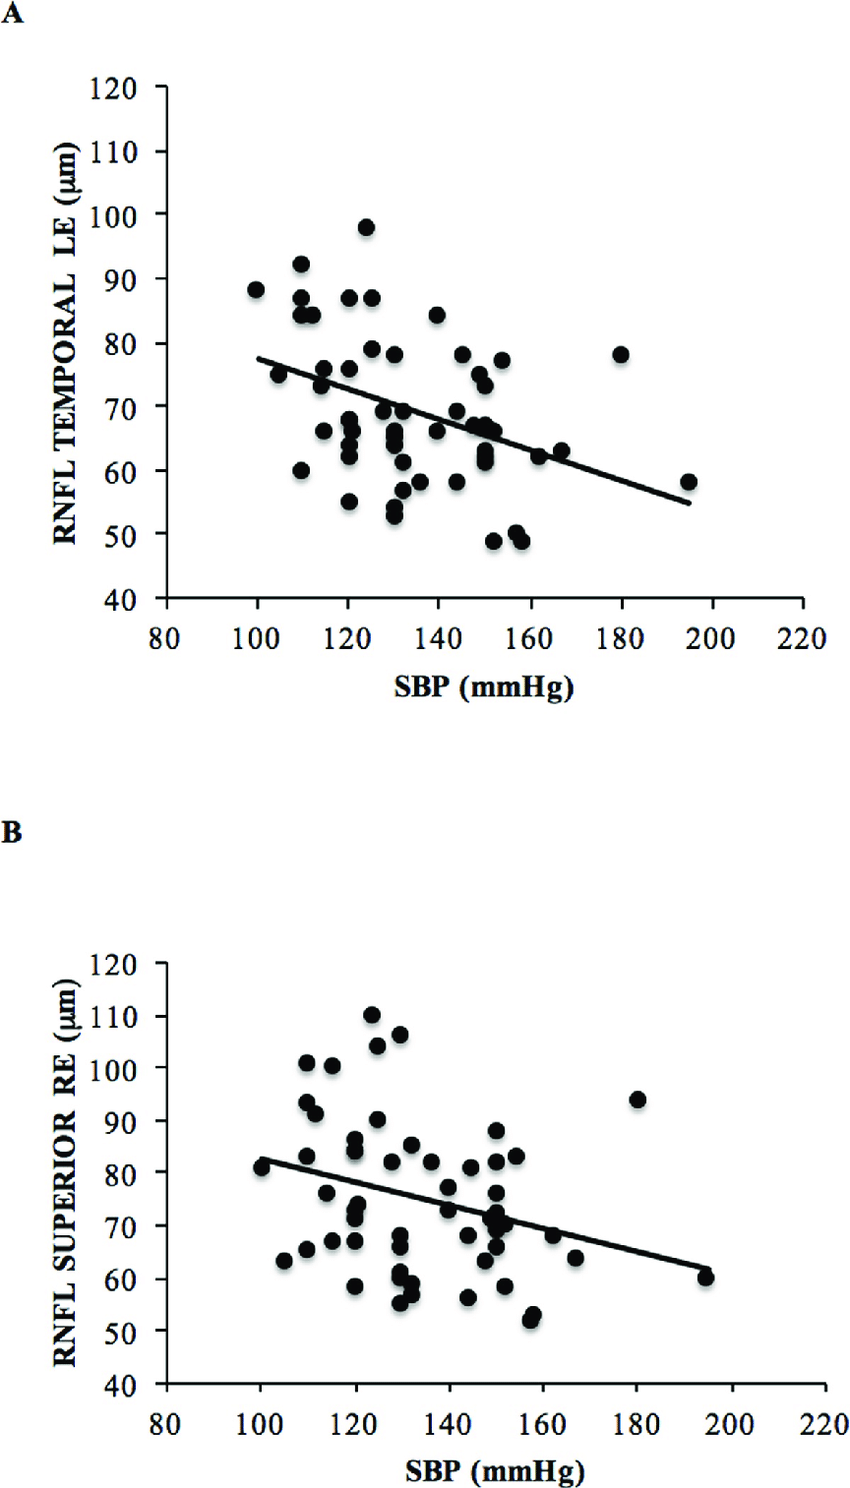 medium resolution of relationship between systolic blood pressure sbp and retinal nerve fiber layer rnfl